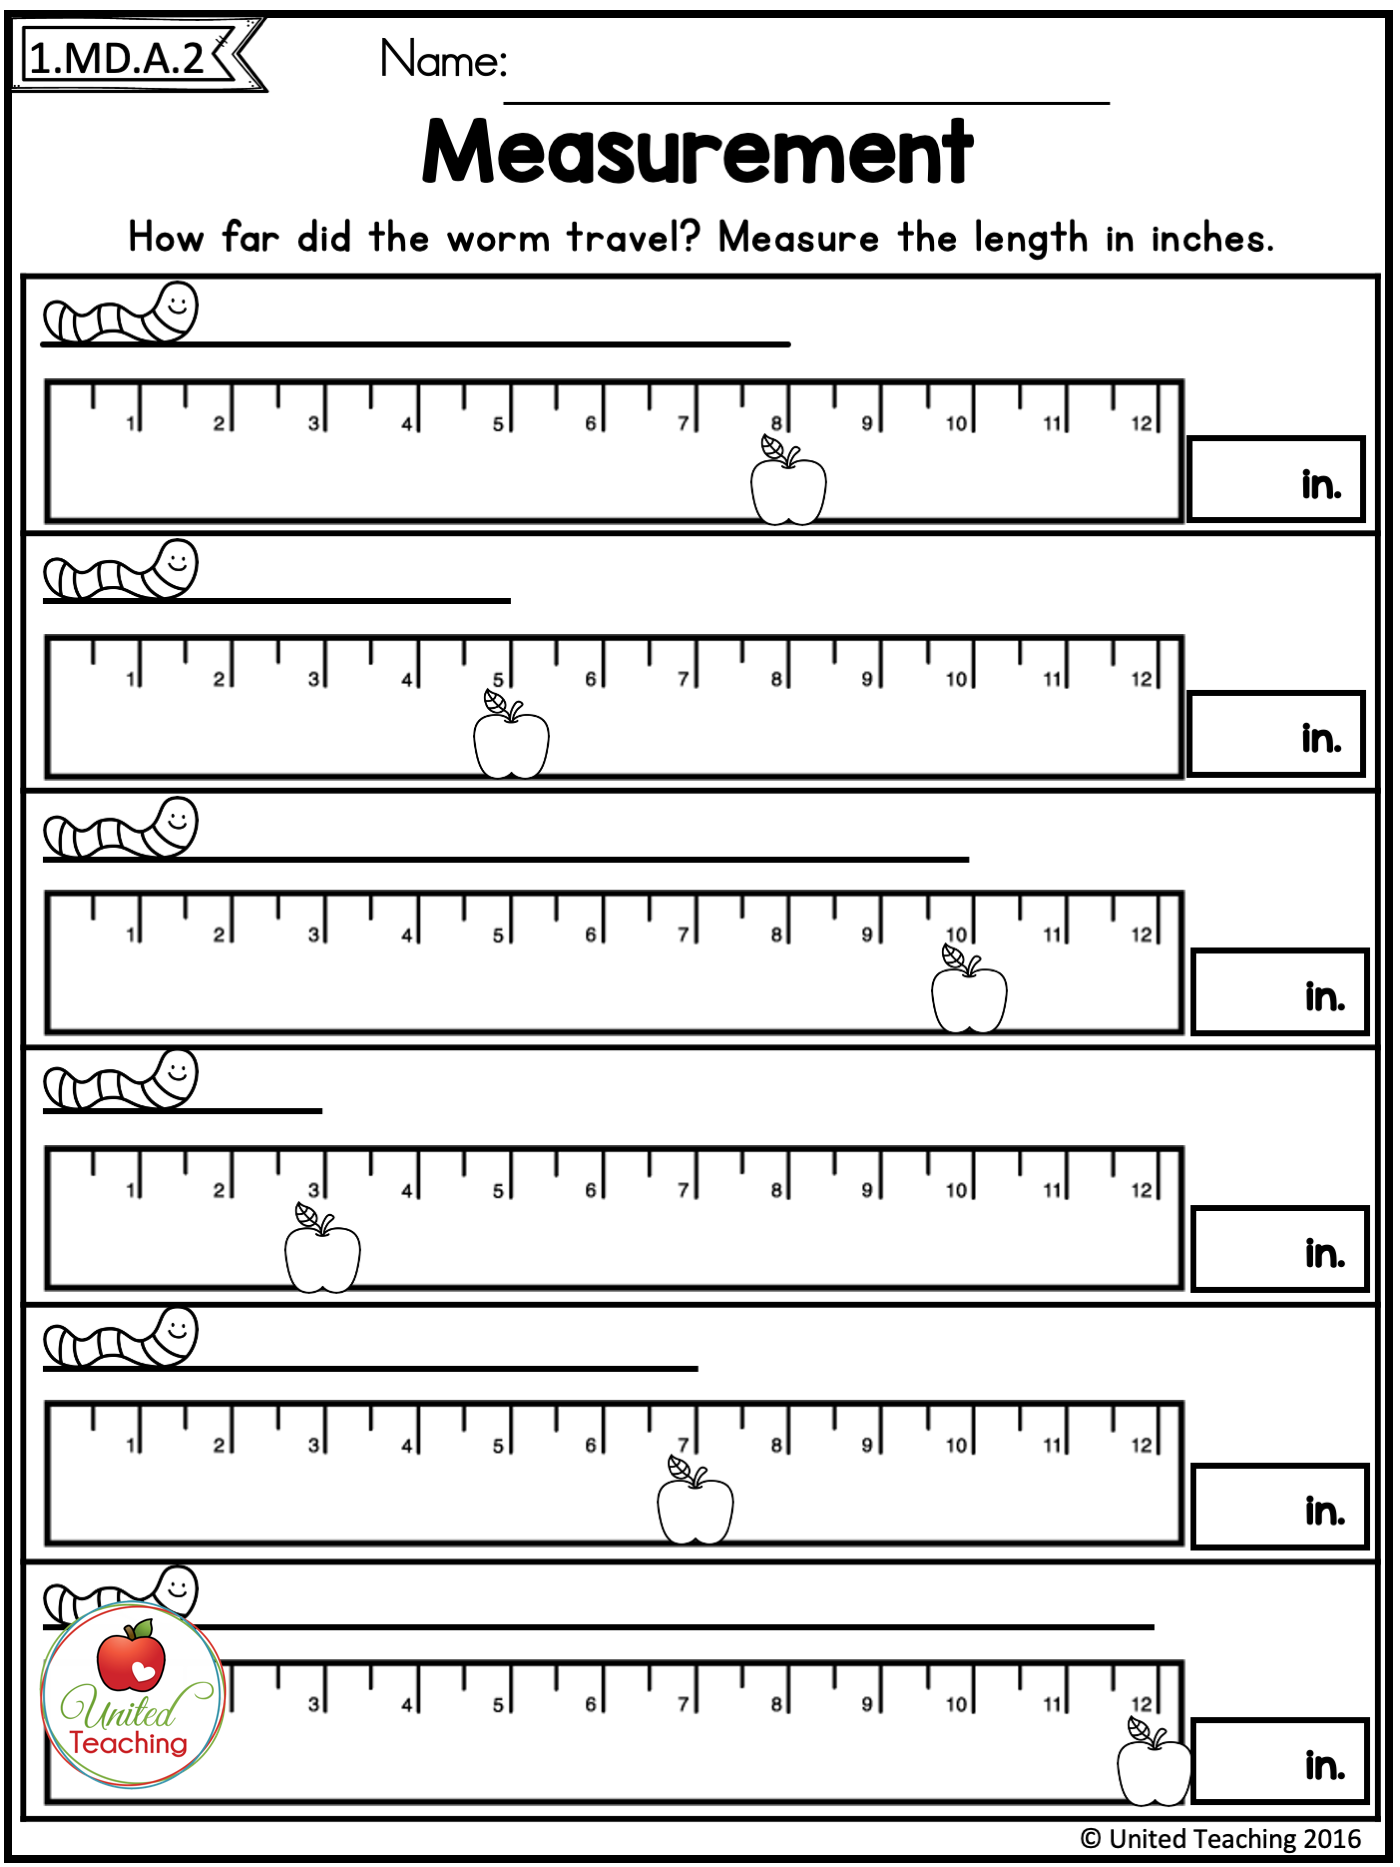 small resolution of FALL MATH ACTIVITIES (1ST GRADE) - United Teaching   Measurement  activities